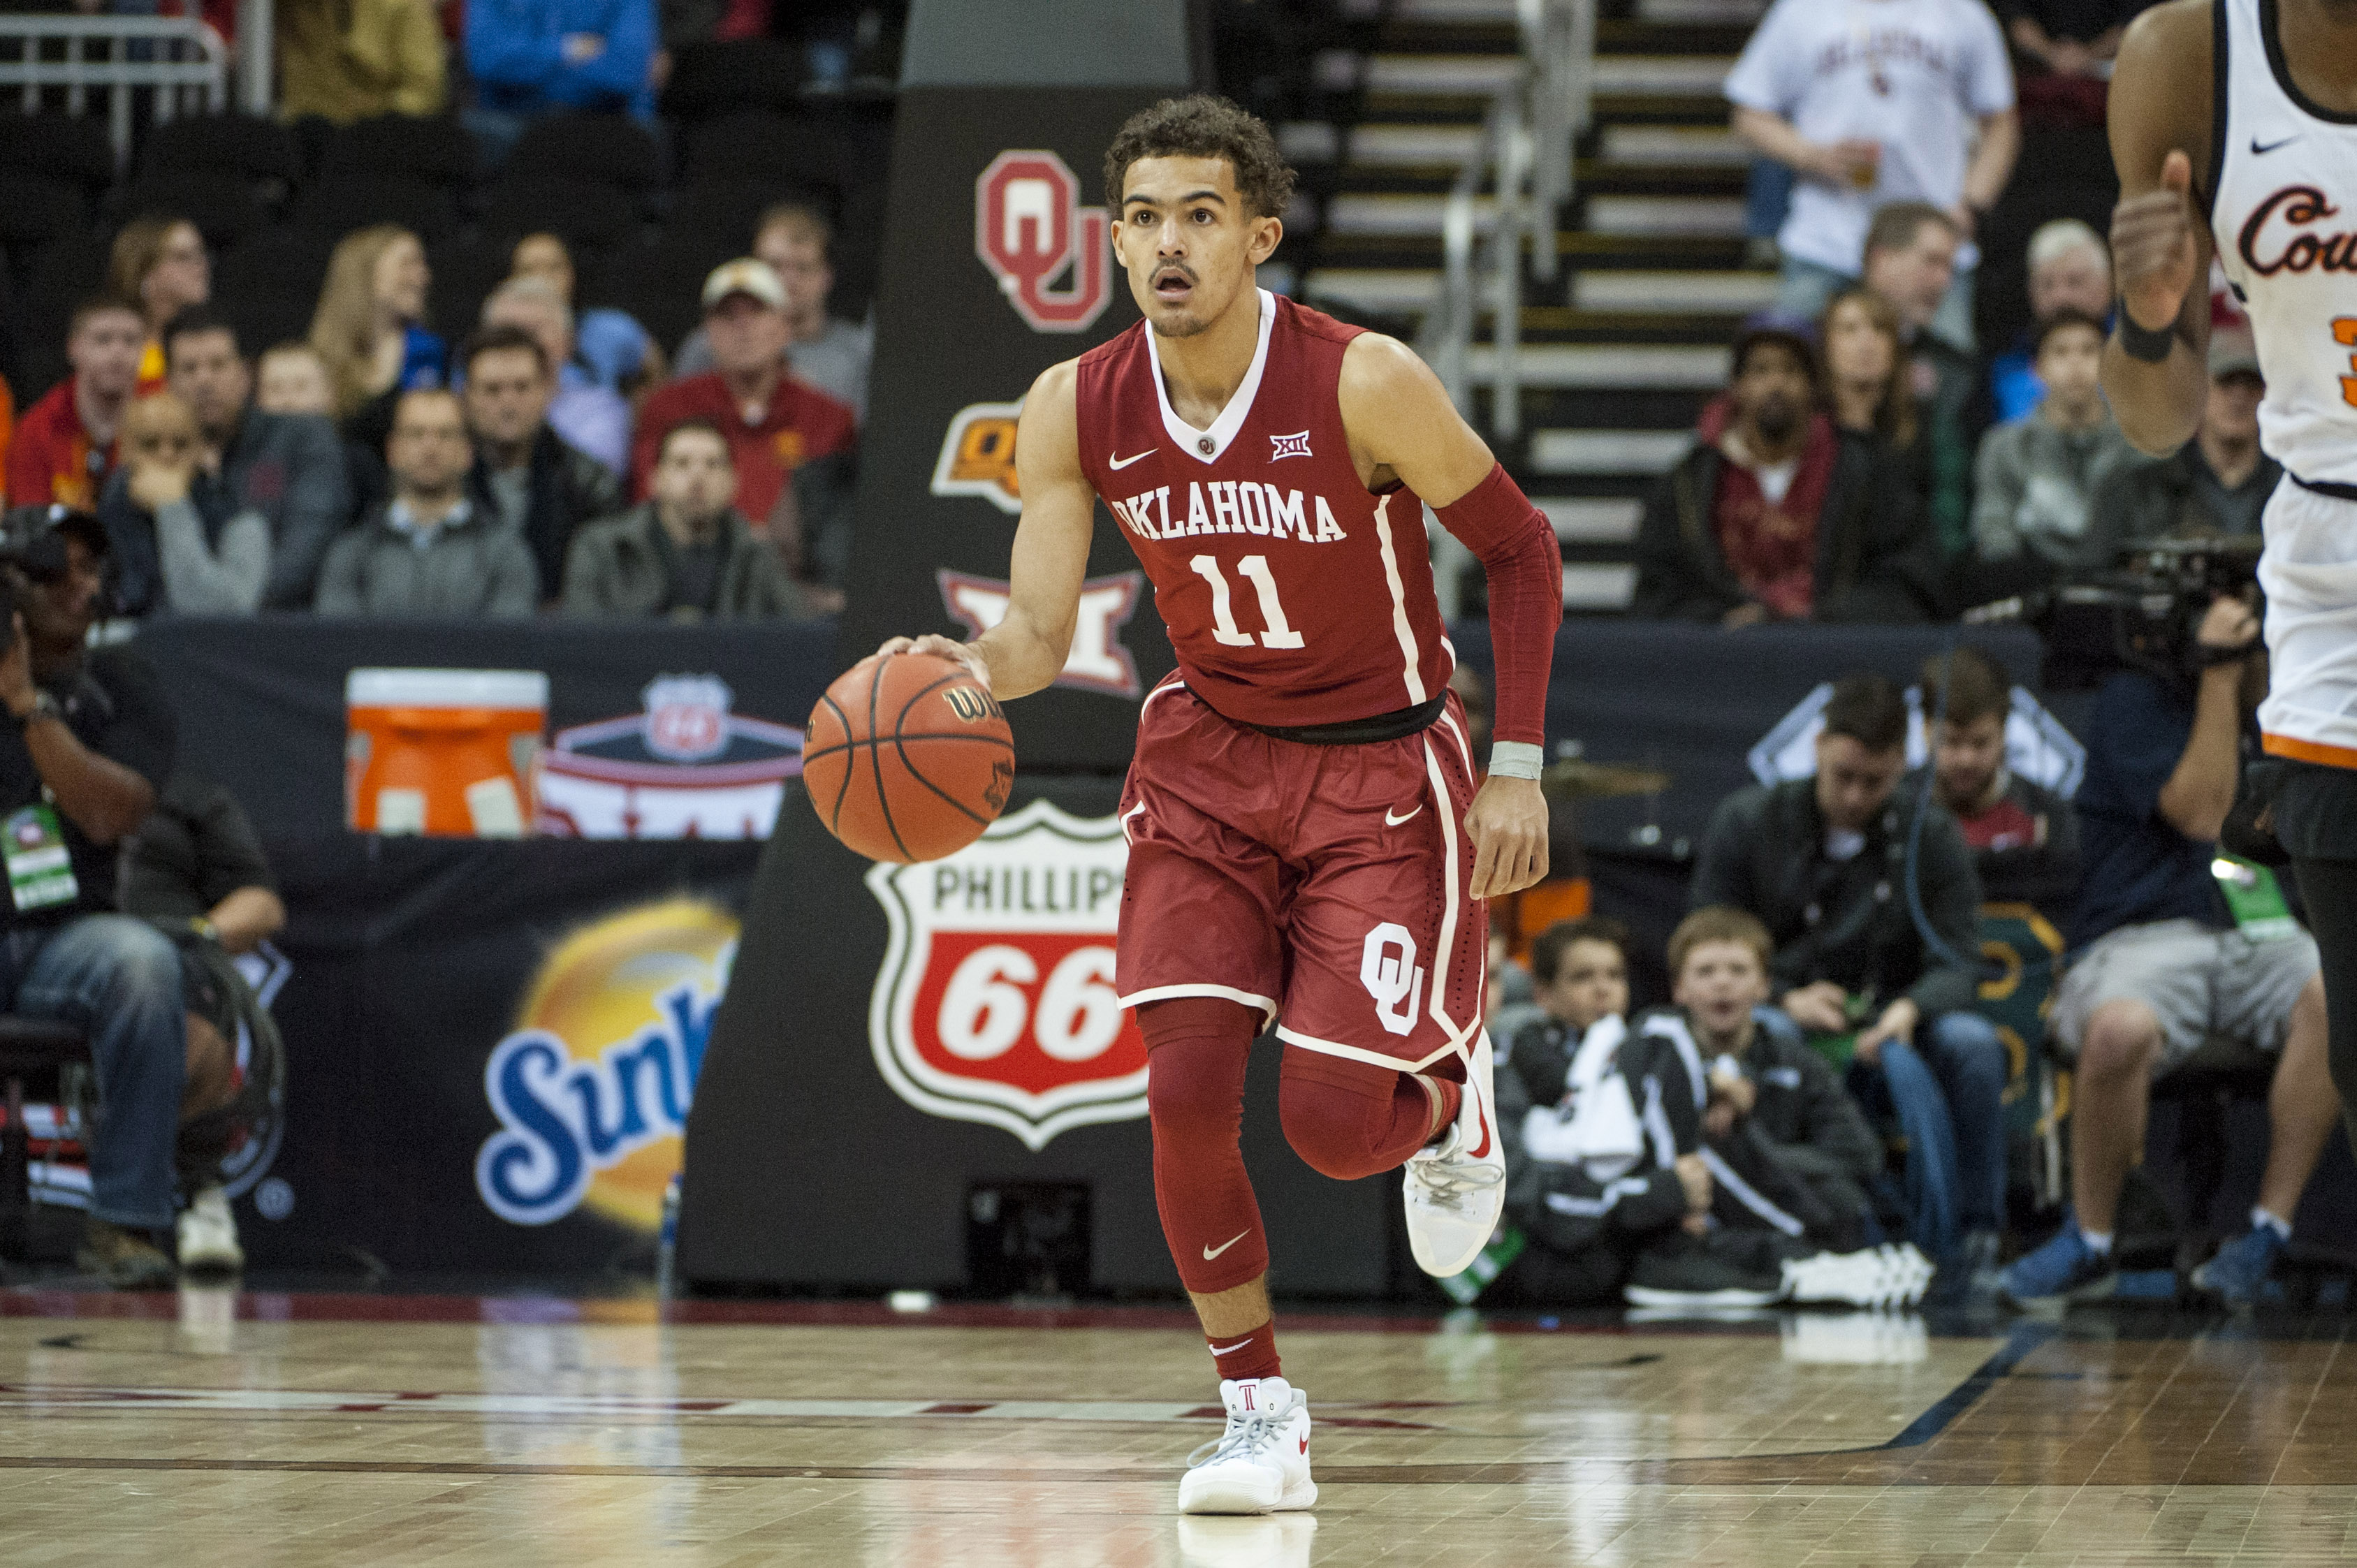 d19b9dd94 Oklahoma freshman Trae Young brings flair and shooting to the point guard  position